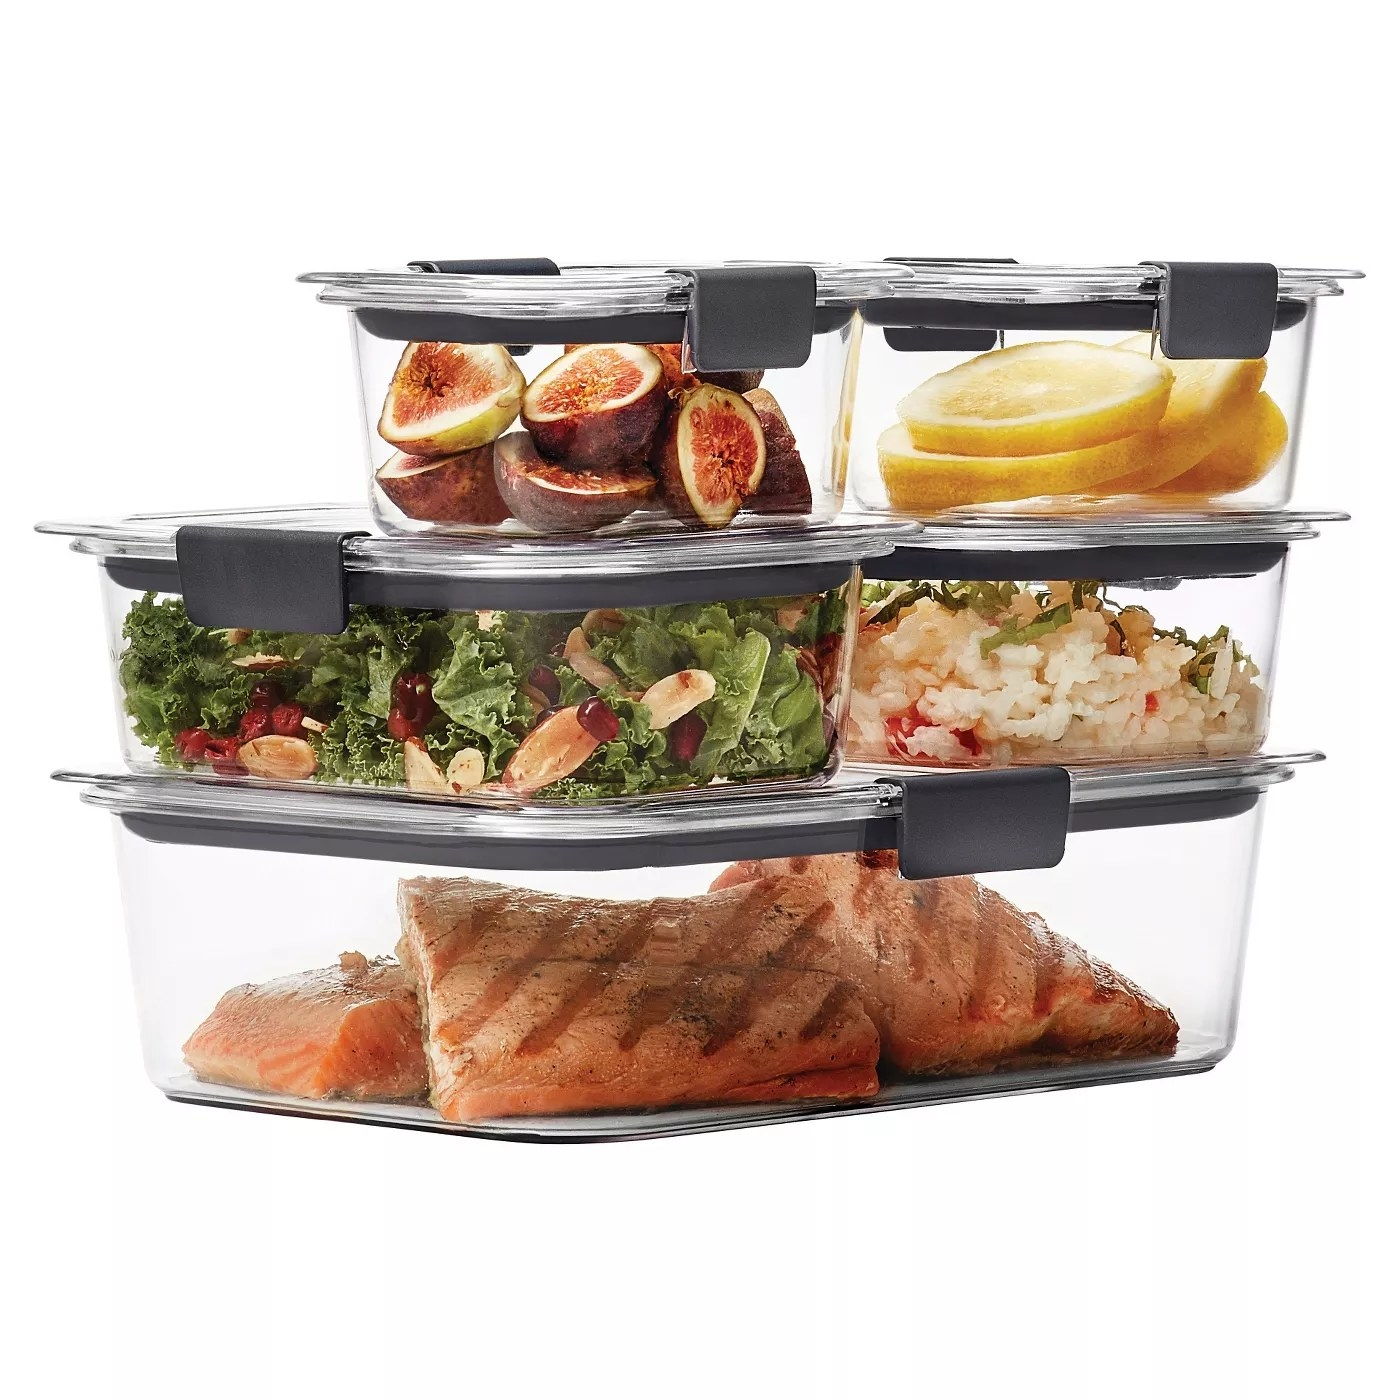 A set of food storage containers